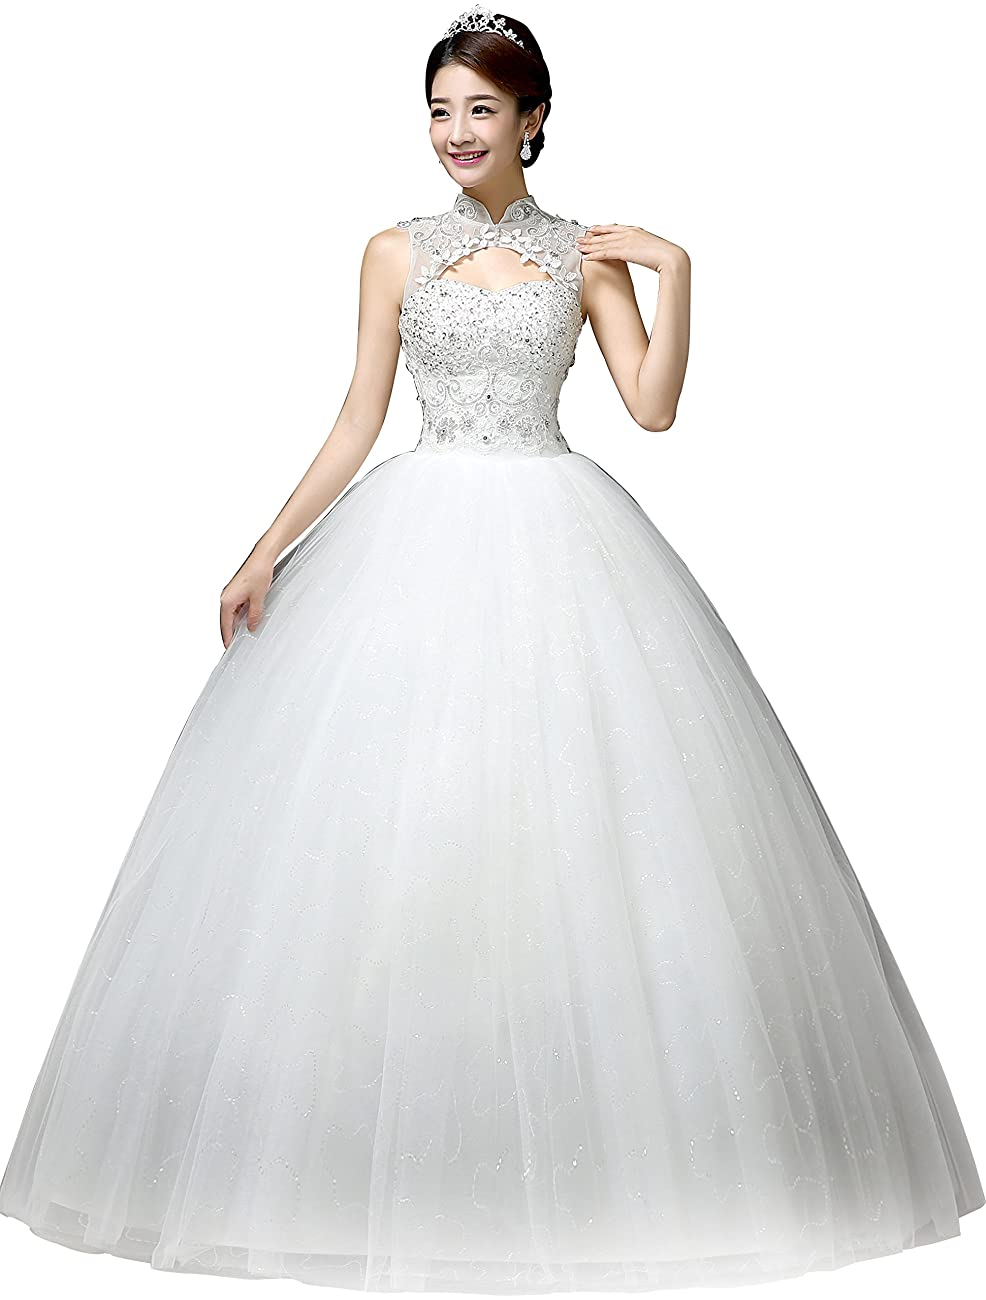 Clover Bridal Vintage High Collar Pearl Wedding Dress for Bride White Under 100 0